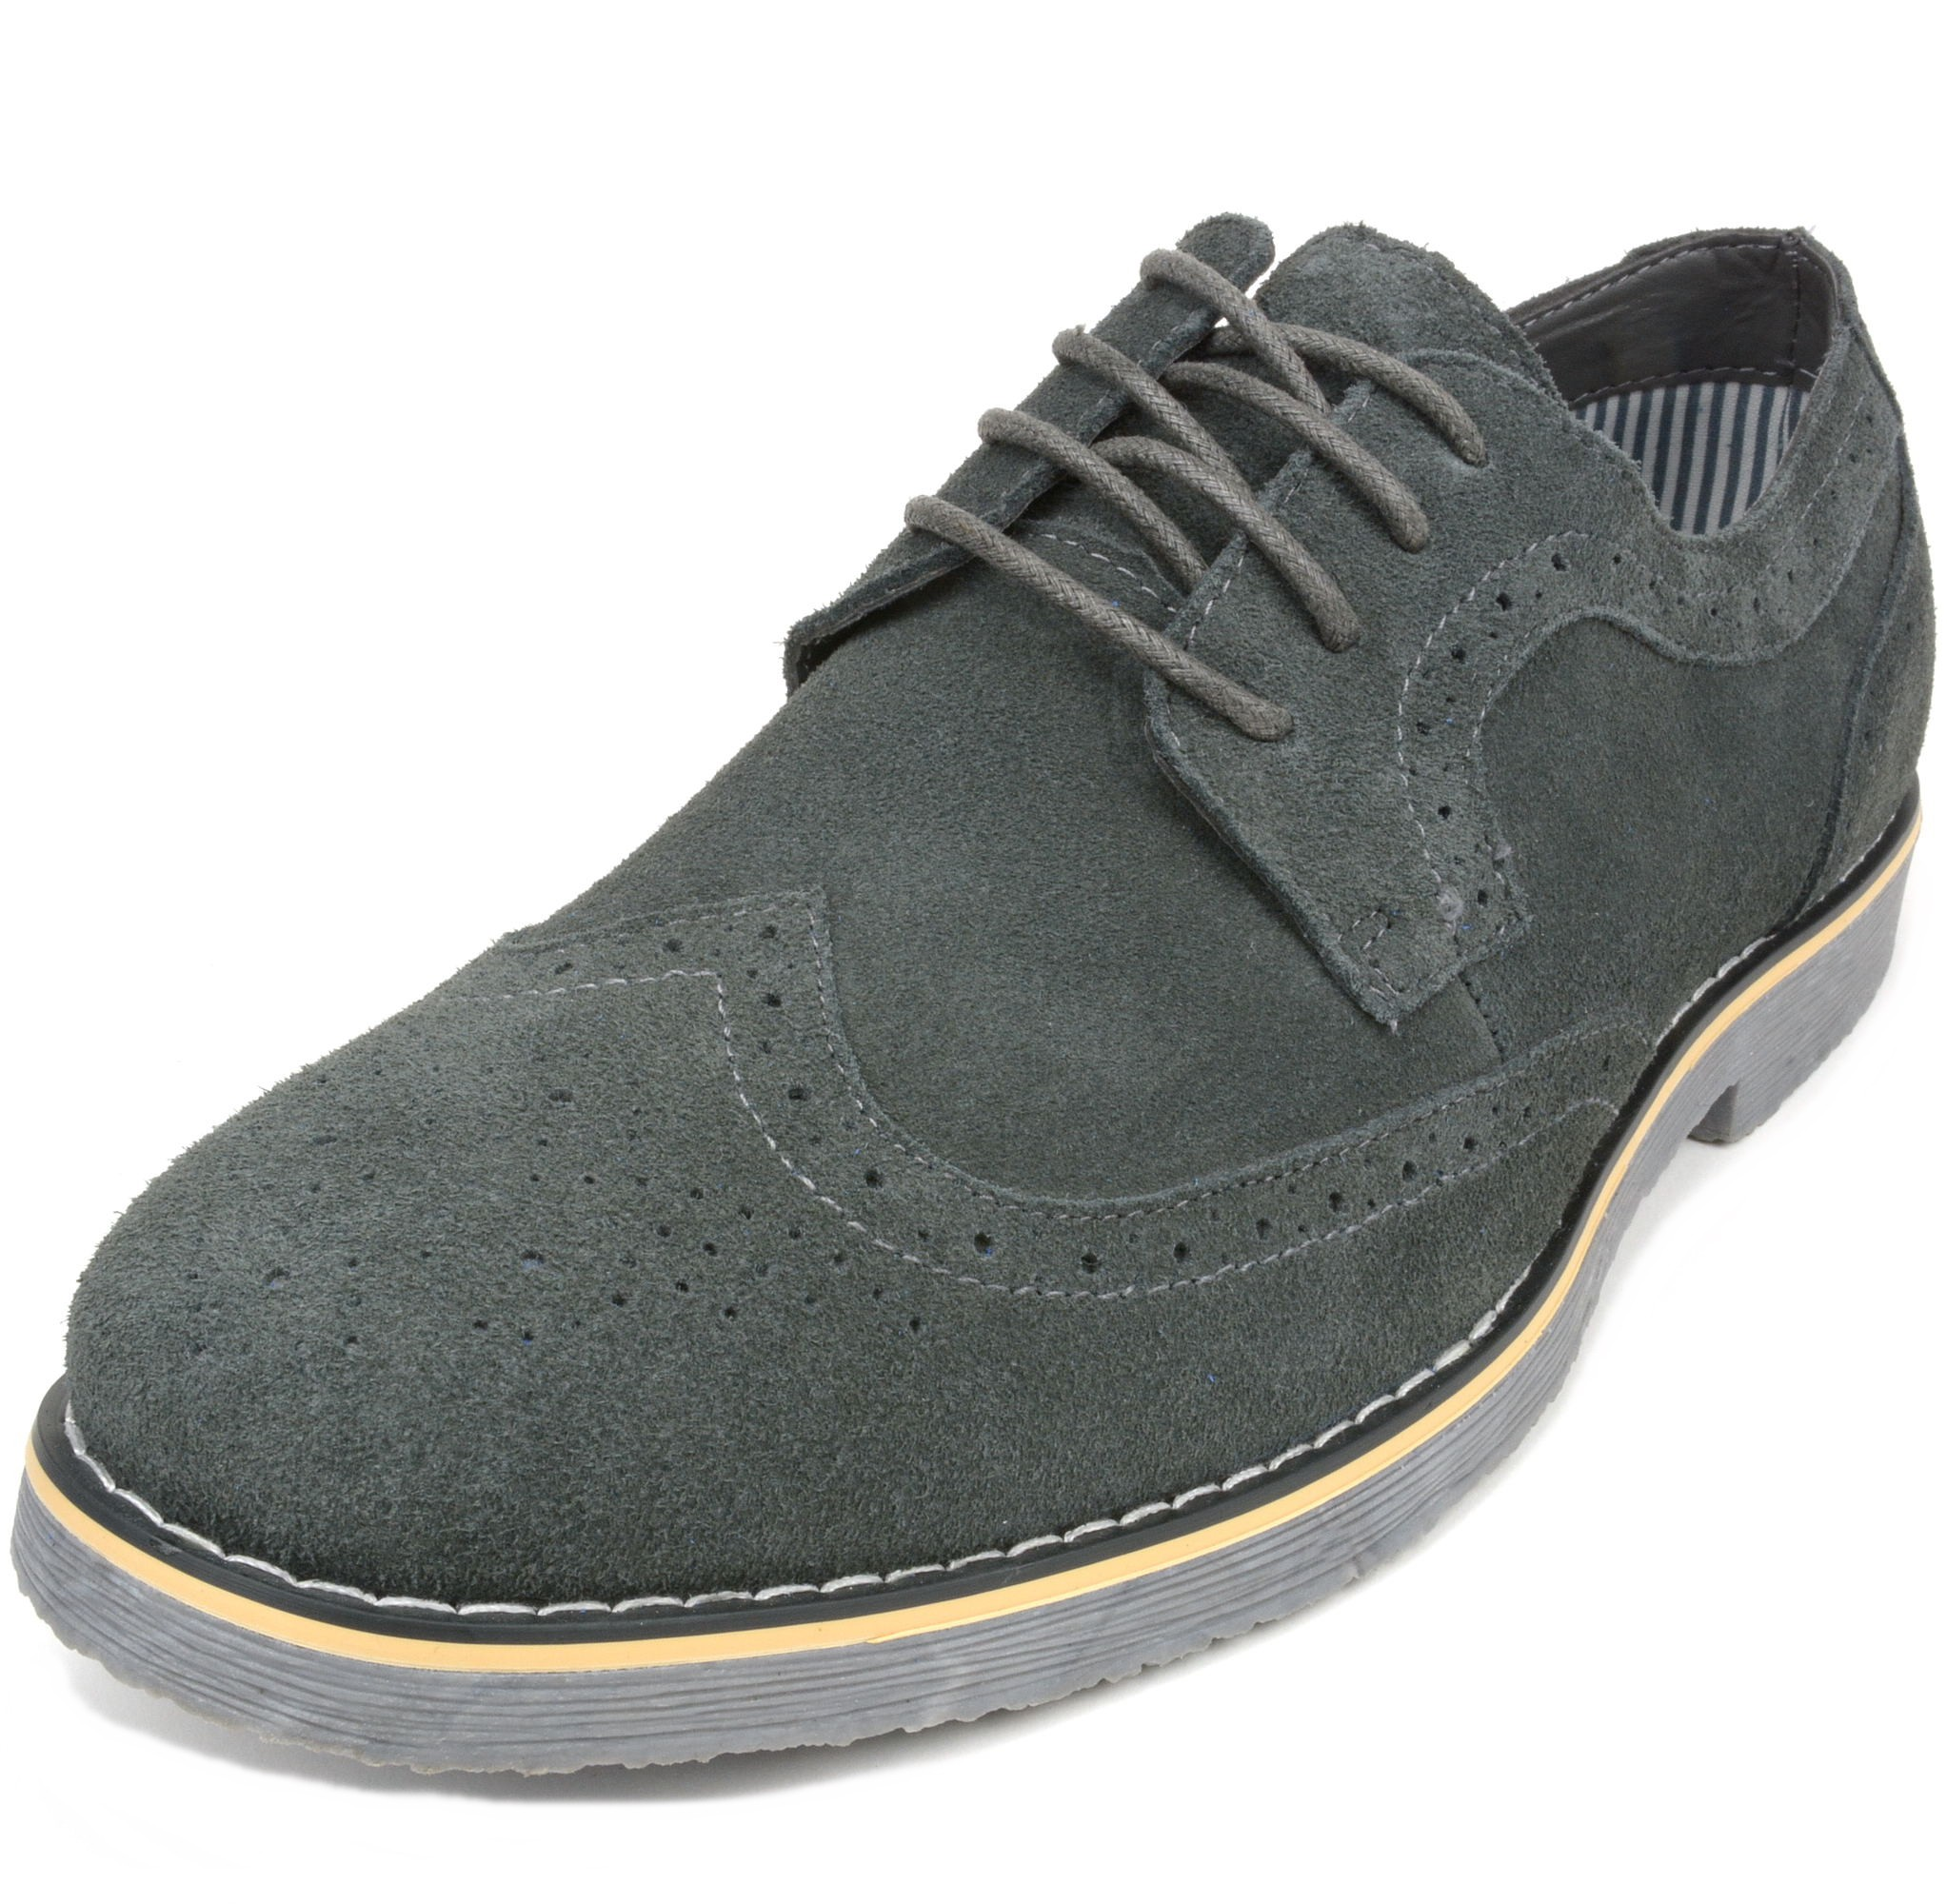 Alpine-Swiss-Beau-Mens-Dress-Shoes-Genuine-Suede-Wing-Tip-Brogue-Lace-Up-Oxfords thumbnail 44